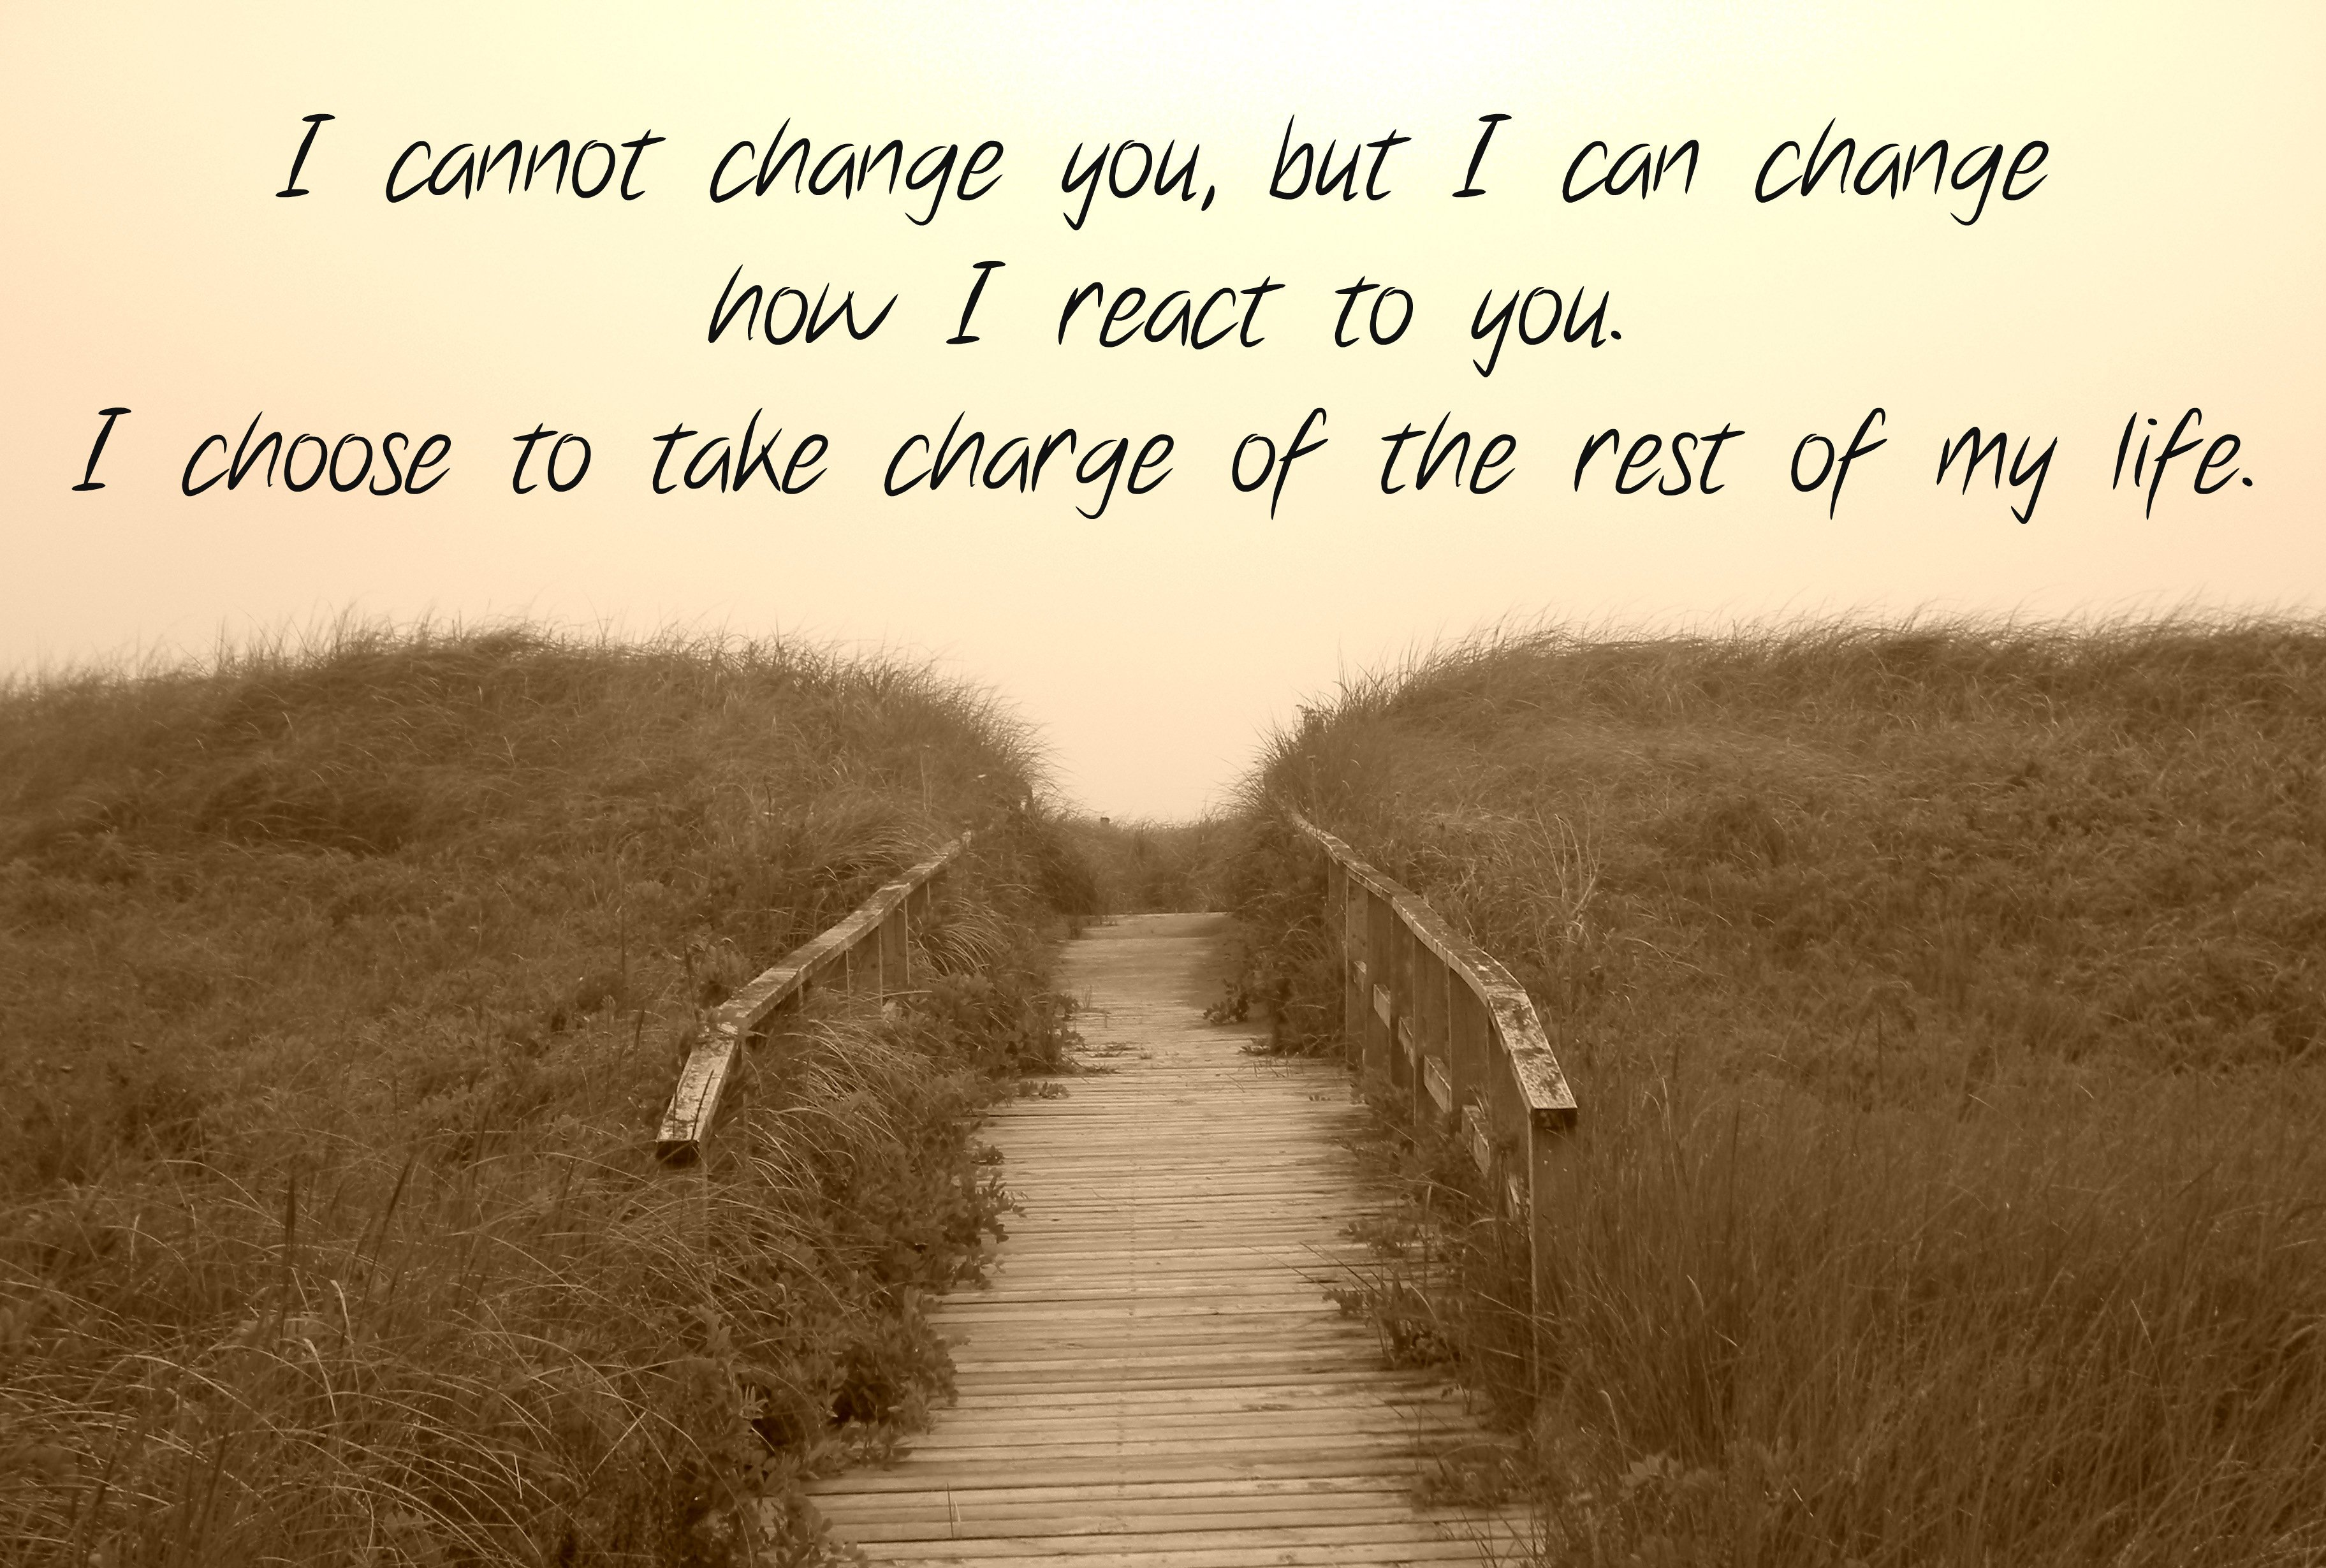 I Cannot Change You But I Can Change Now I React To You I Choose To Take Charge Of The Rest Of My Life